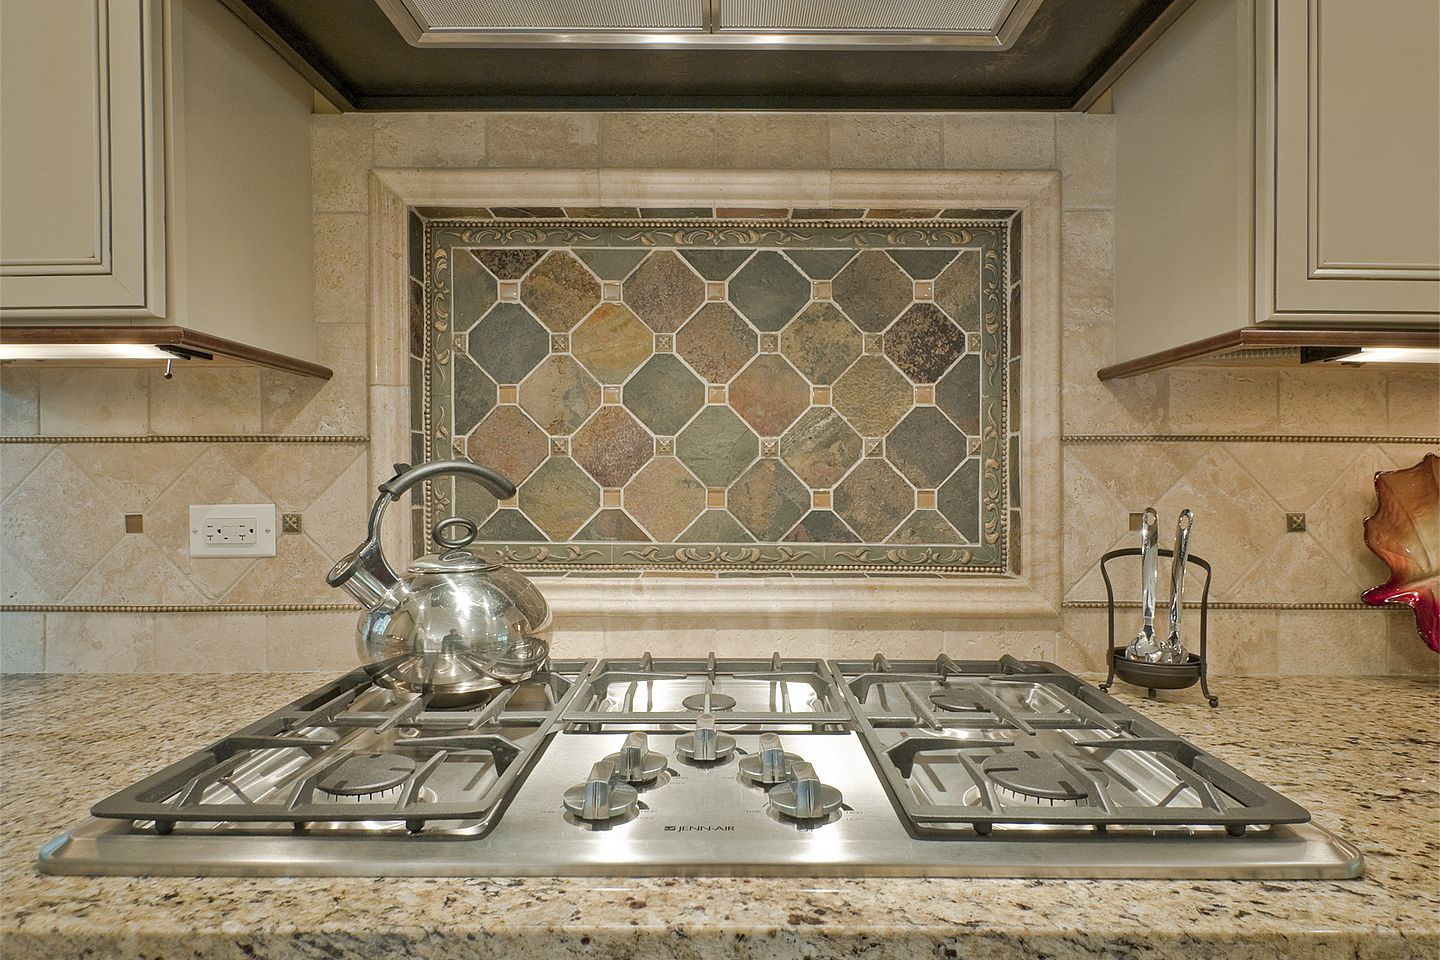 17 best images about back splash on pinterest kitchen backsplash design stove and backsplash tile